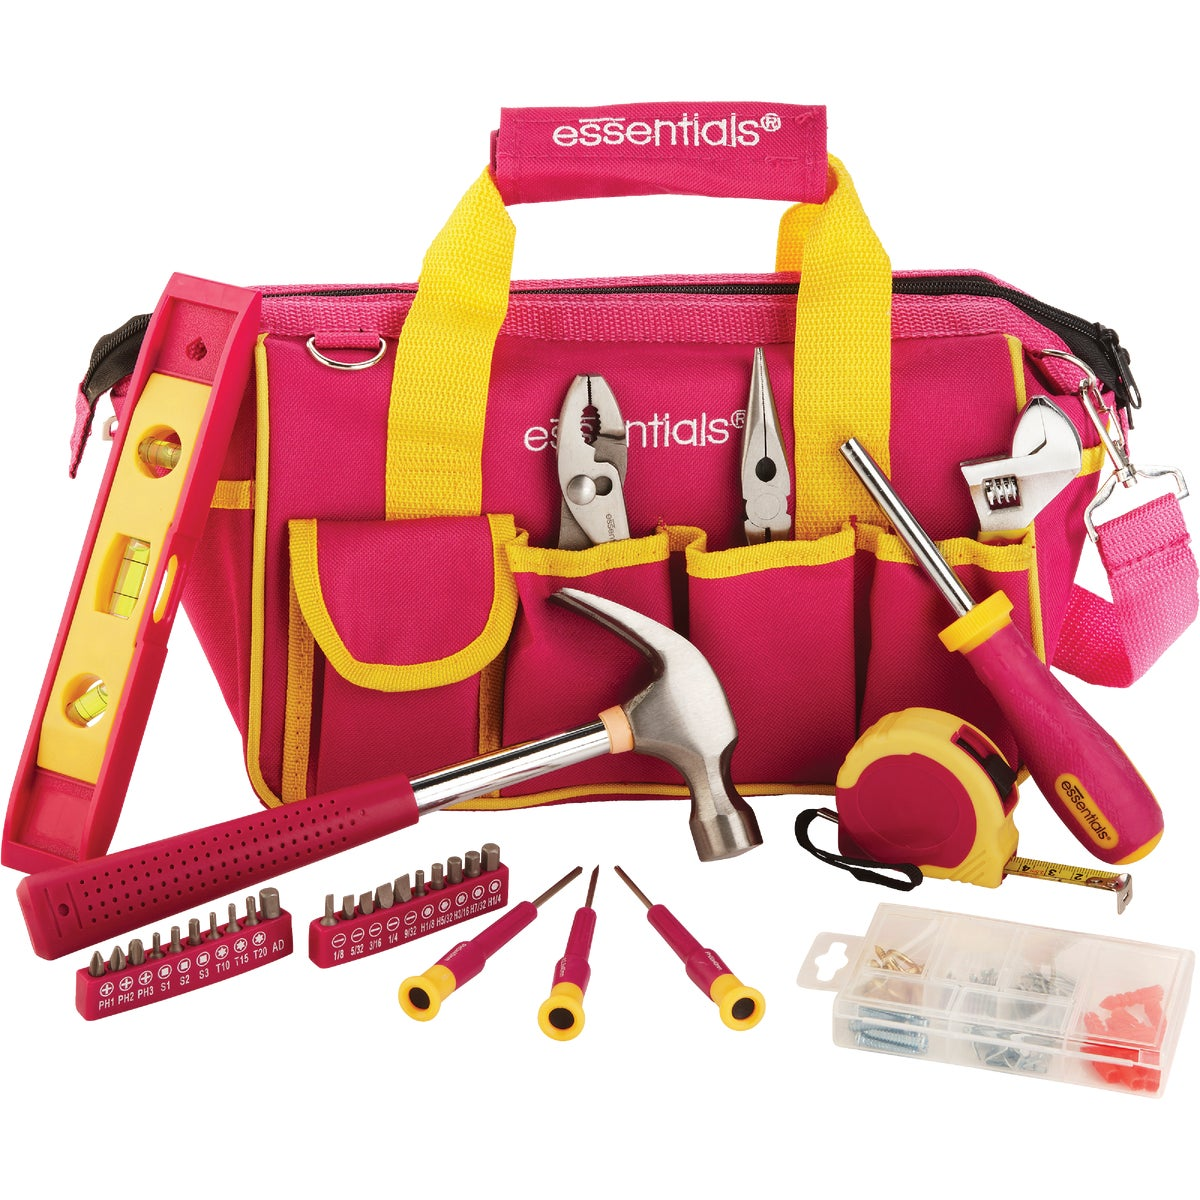 31PC PINK TOOL BAG - 21043 by Great Neck Saw Inc